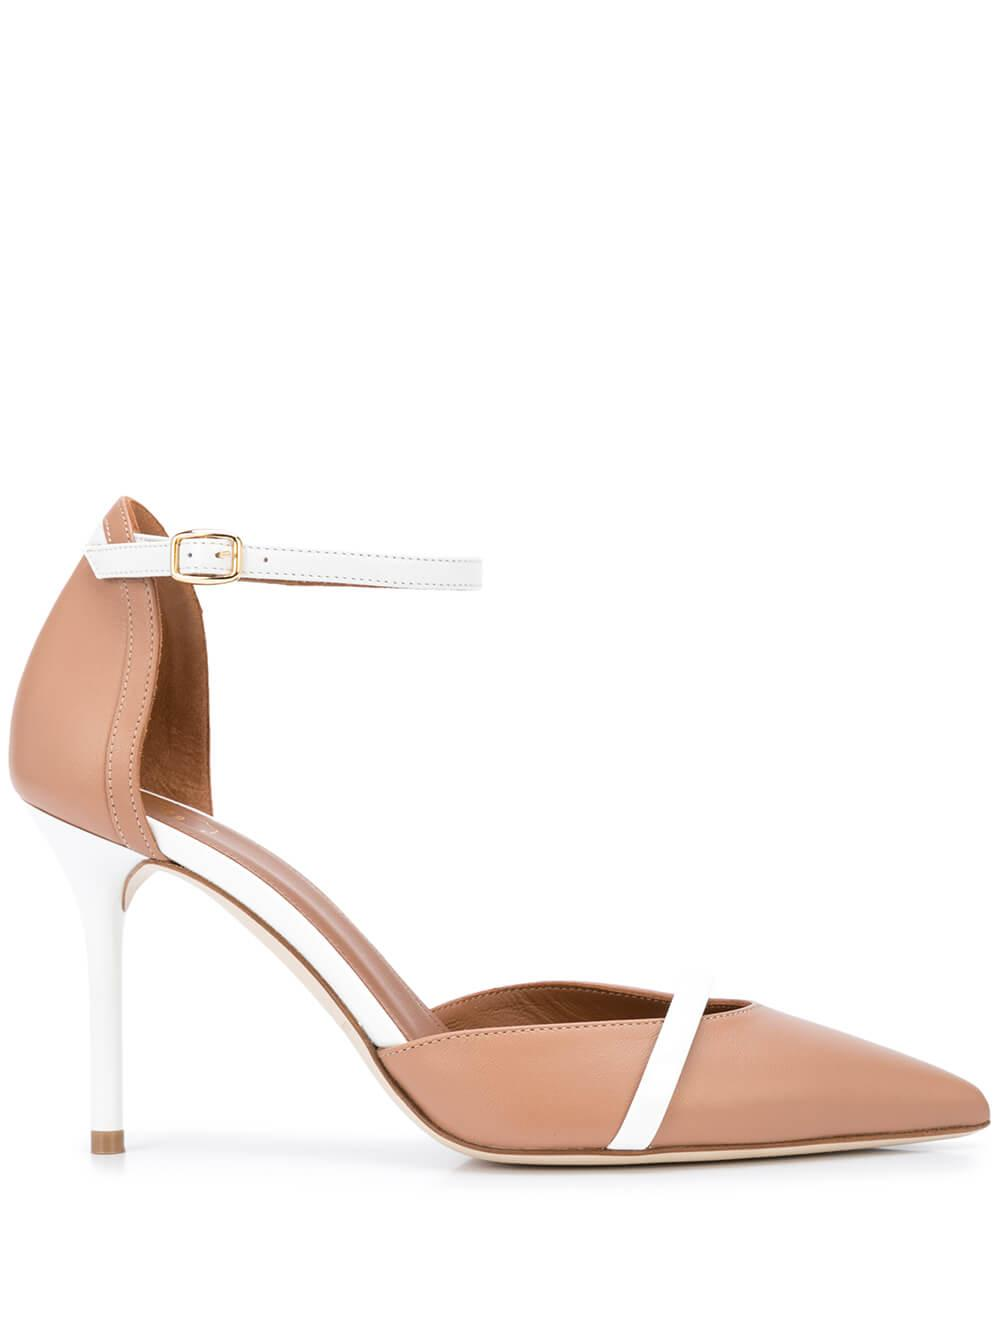 Booboo Nappa 85MM Pump With Ankle Strap